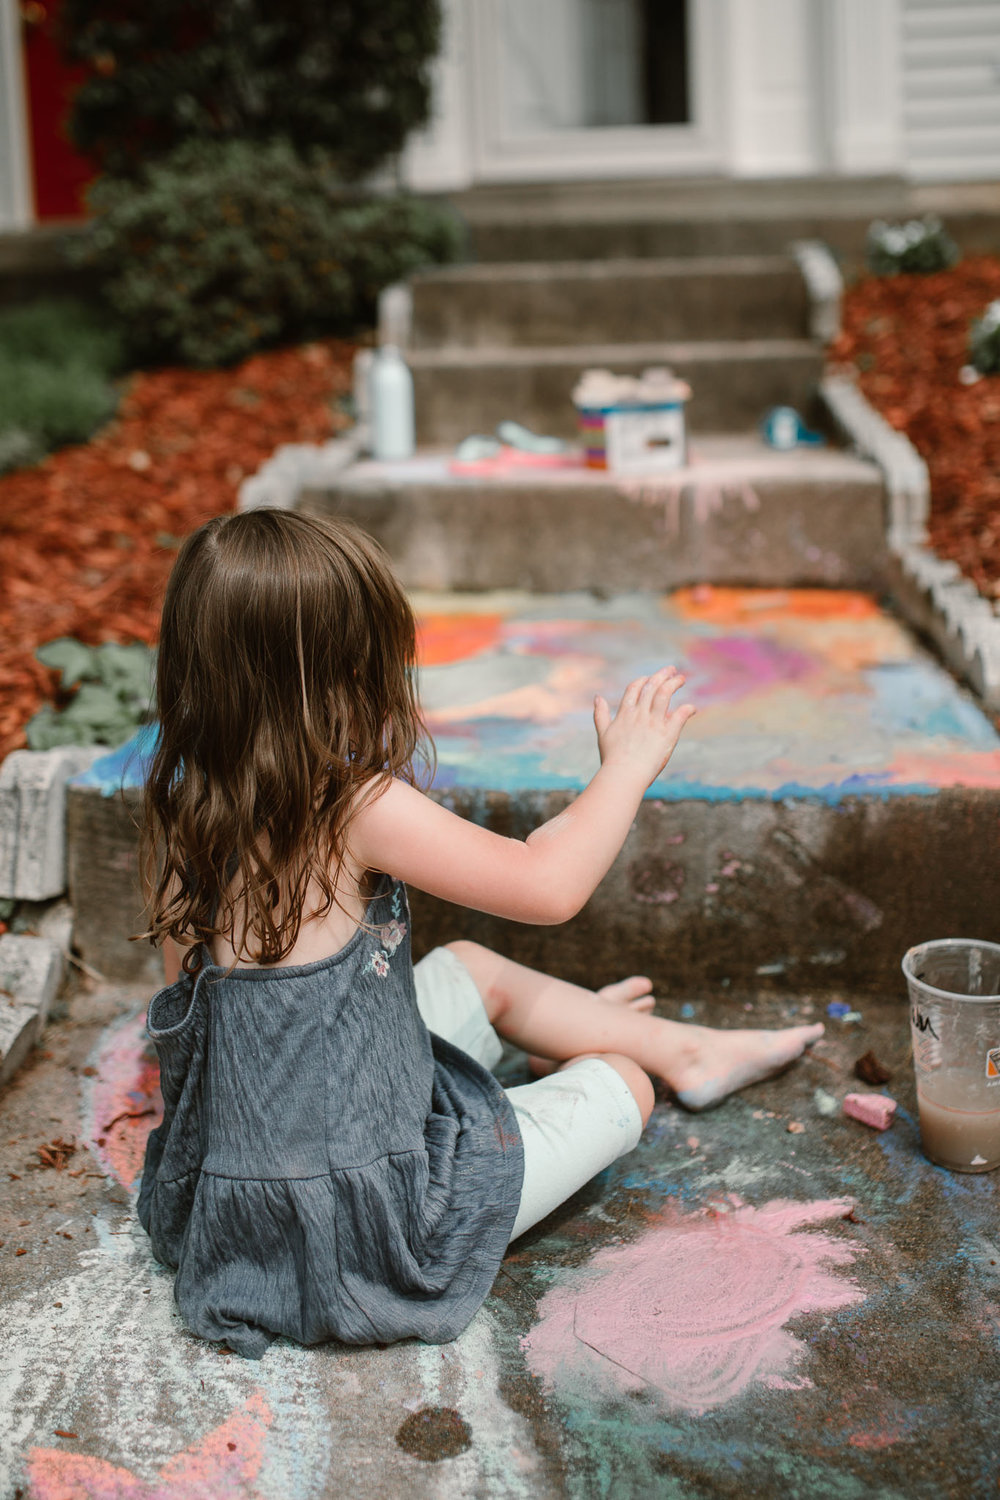 Girl colors with vibrant chalk on the sidewalk outside her home